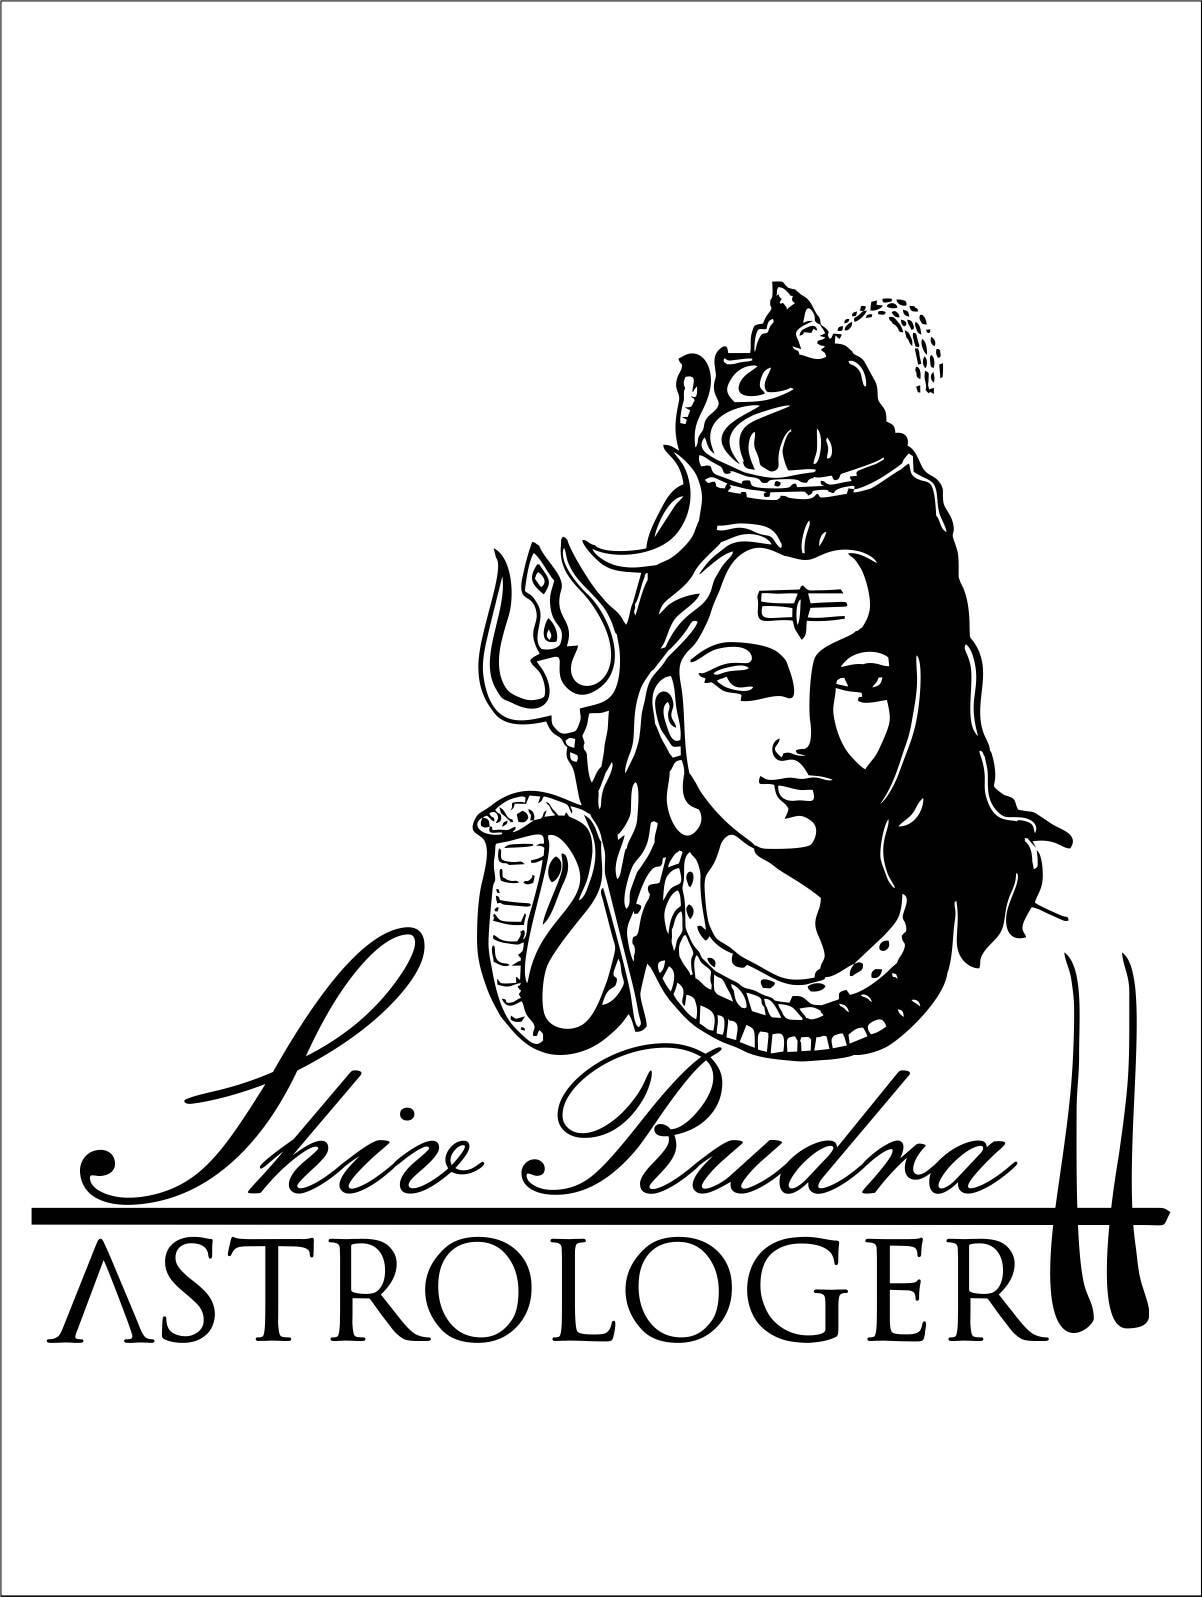 Logo of Shiv Rudra Astrologer Mo 8758592258 Vashikaran Specialist Black Magic Specialist Love Problem Specialist Love Marriage Specialist One Side Love Problem Husband Wife Problems Solutions Get Ex Love Back Best Astrologer Best Jyotish Love Back Vasikaran Love Astrology